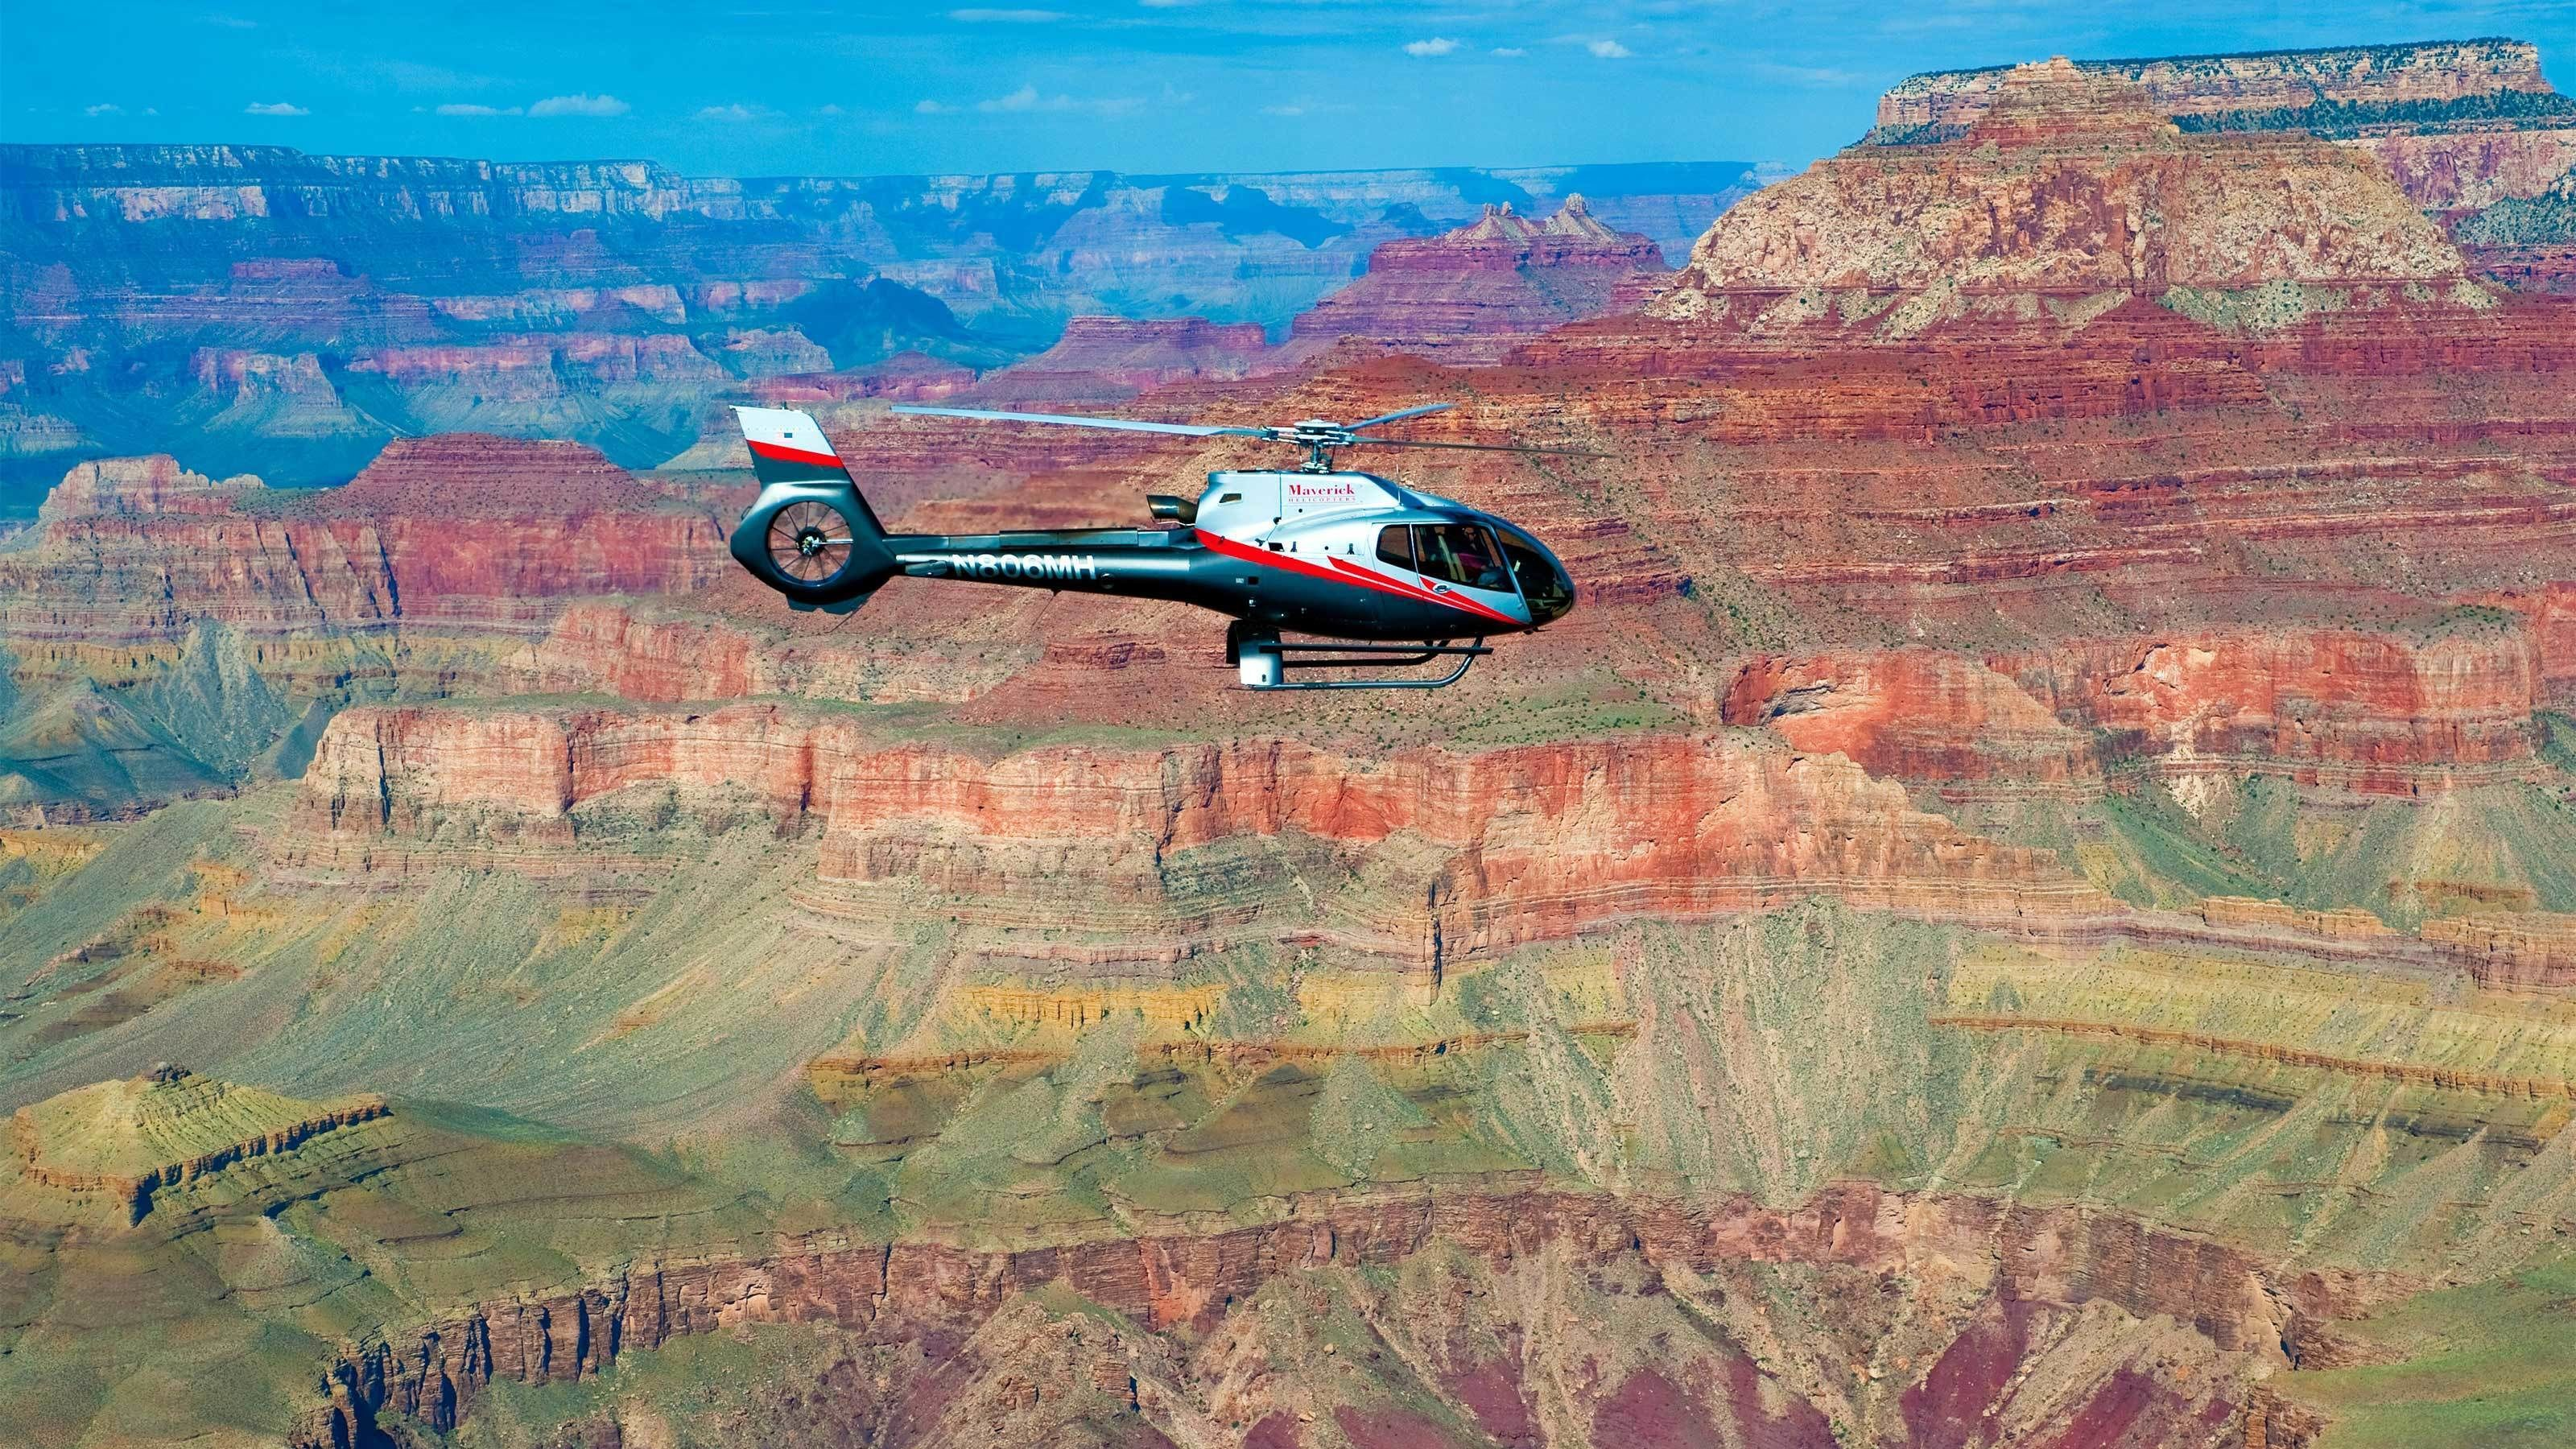 Helicopter flying above the Grand Canyon